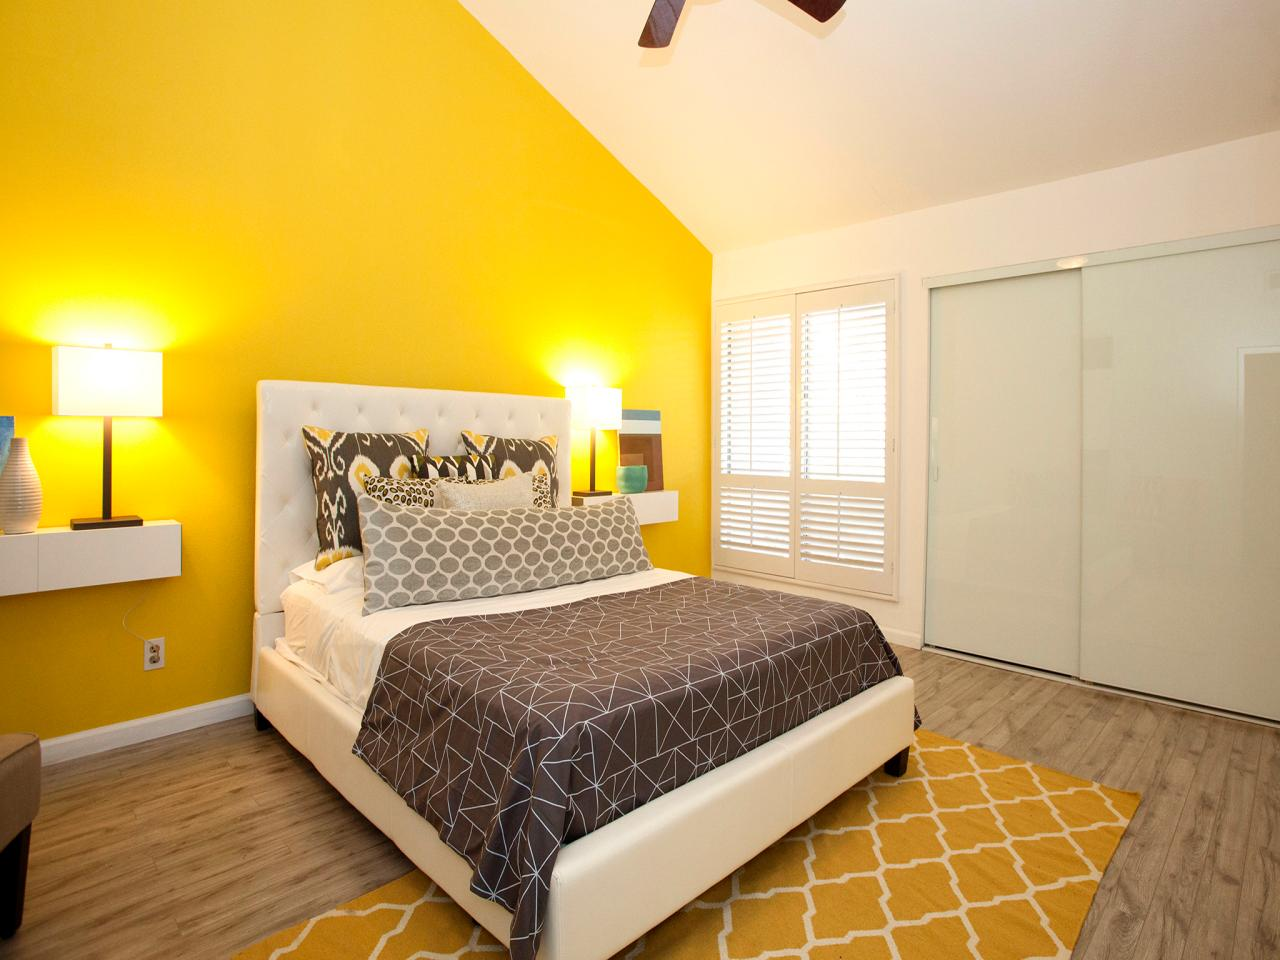 Photos hgtv for Home decor yellow walls